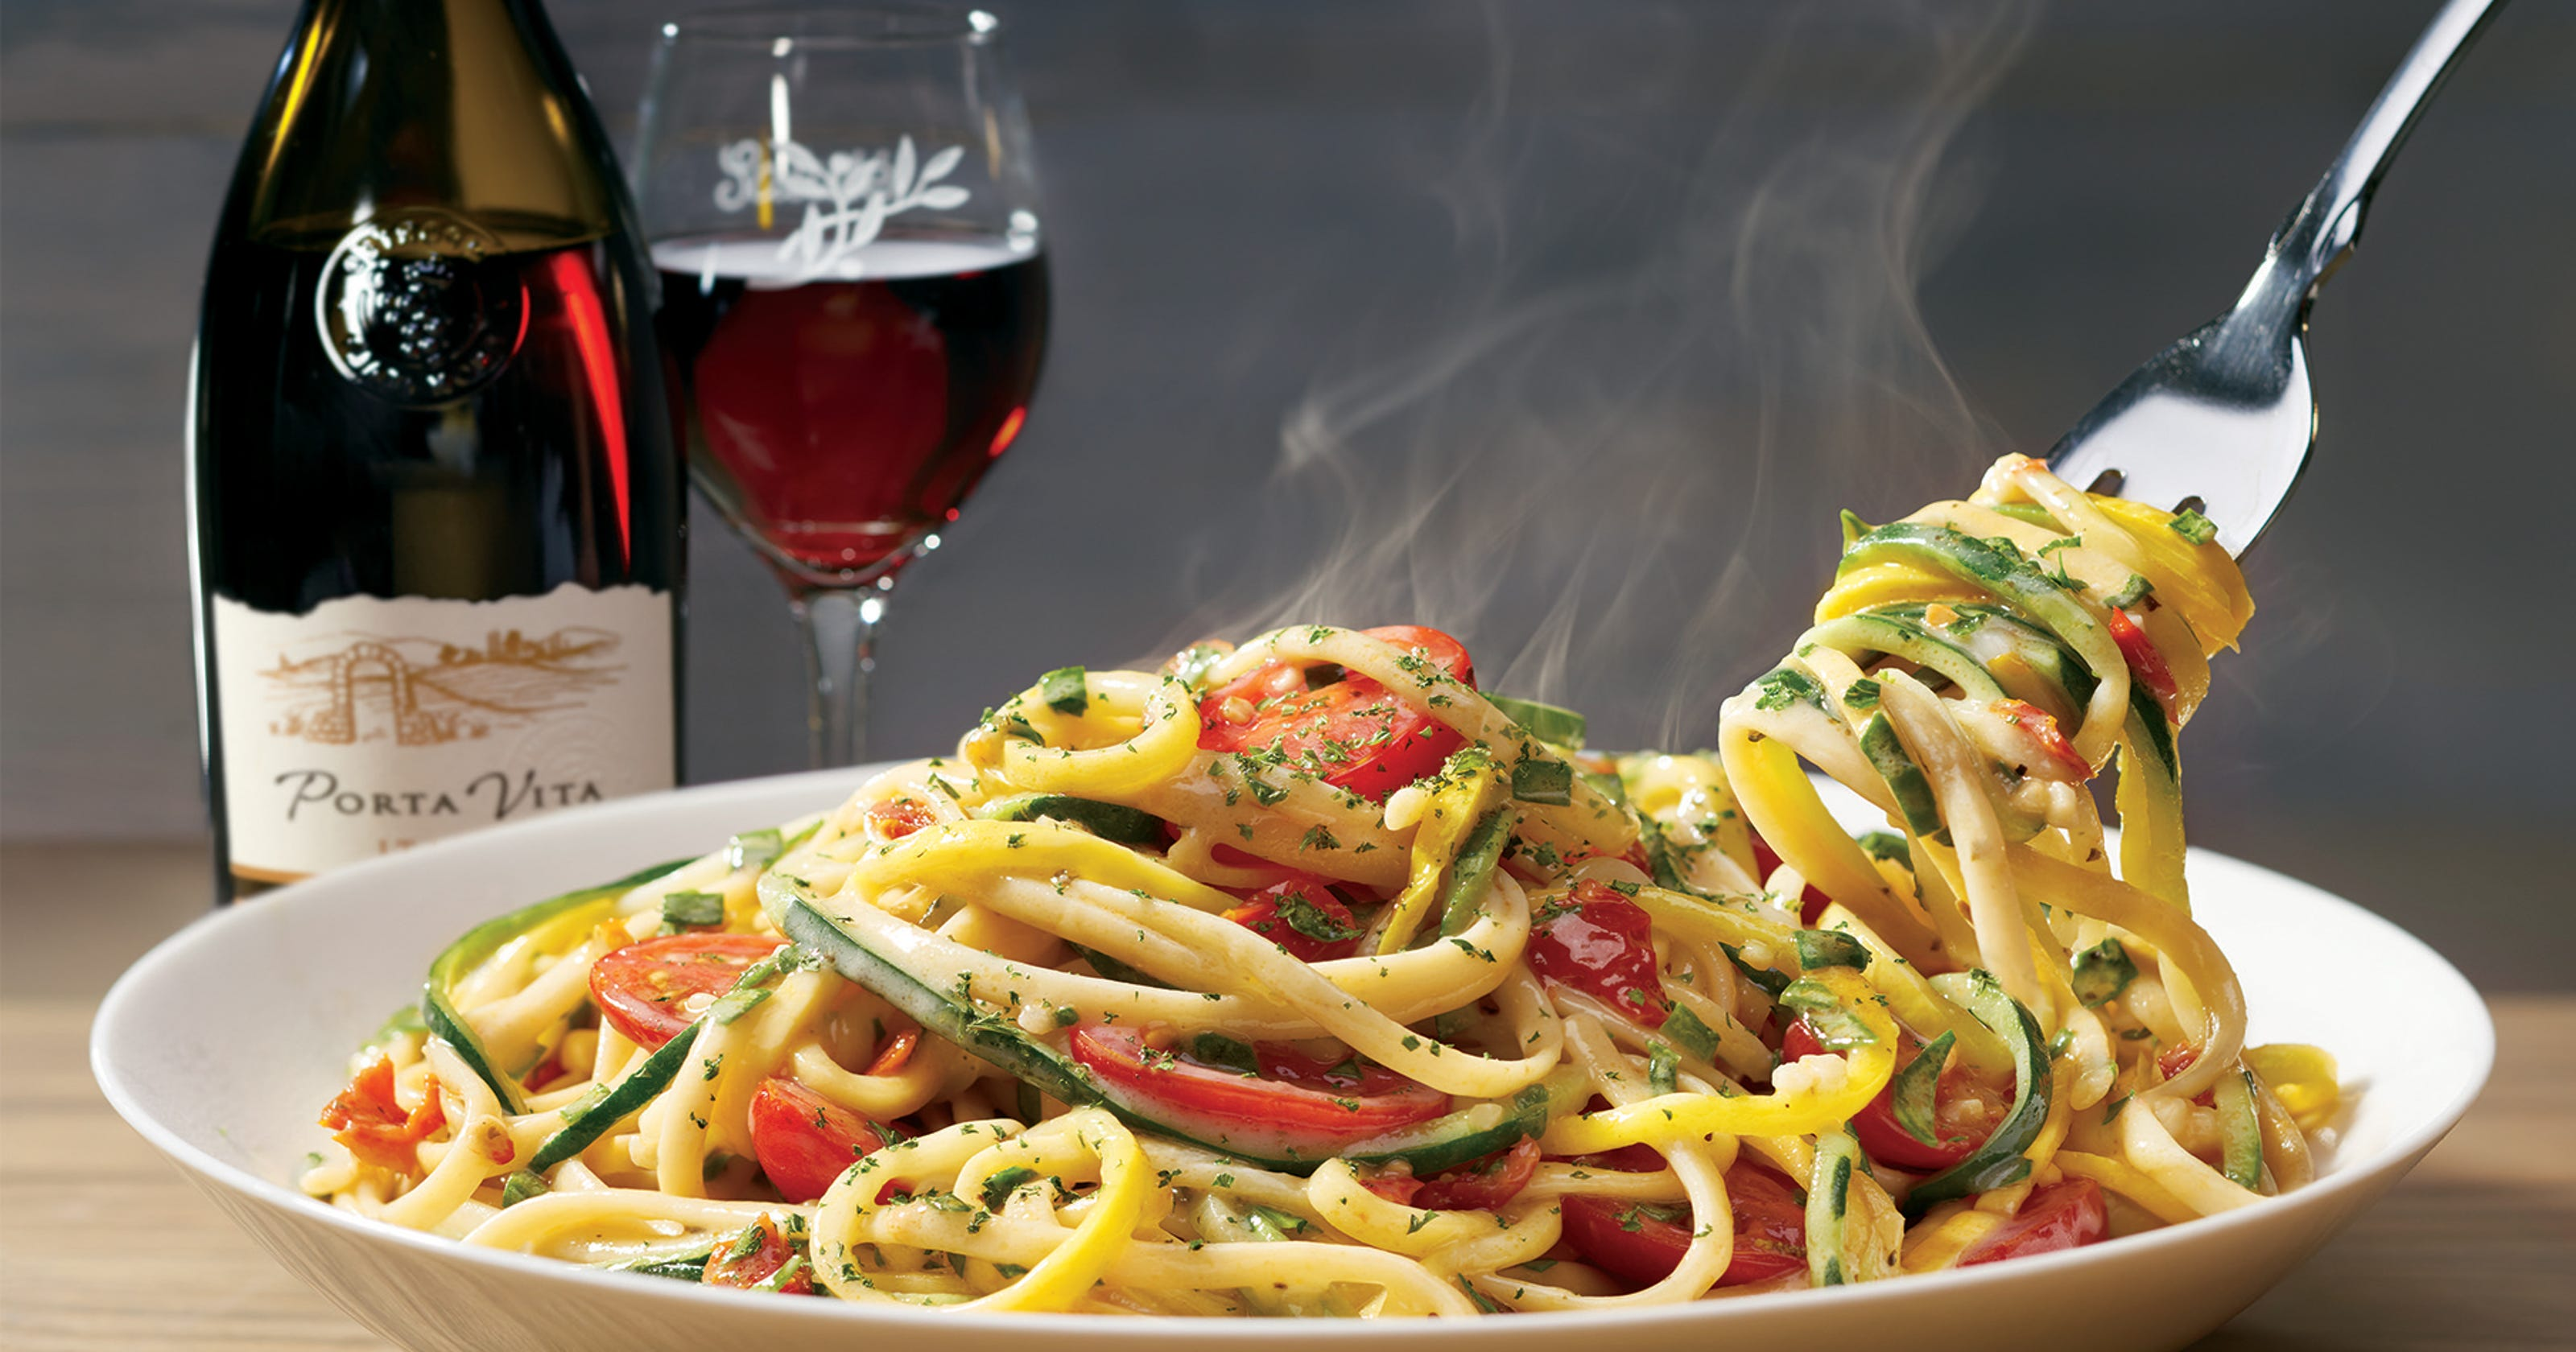 olive garden adds lower calorie mediterranean dishes to their menus - Olive Garden On Poplar